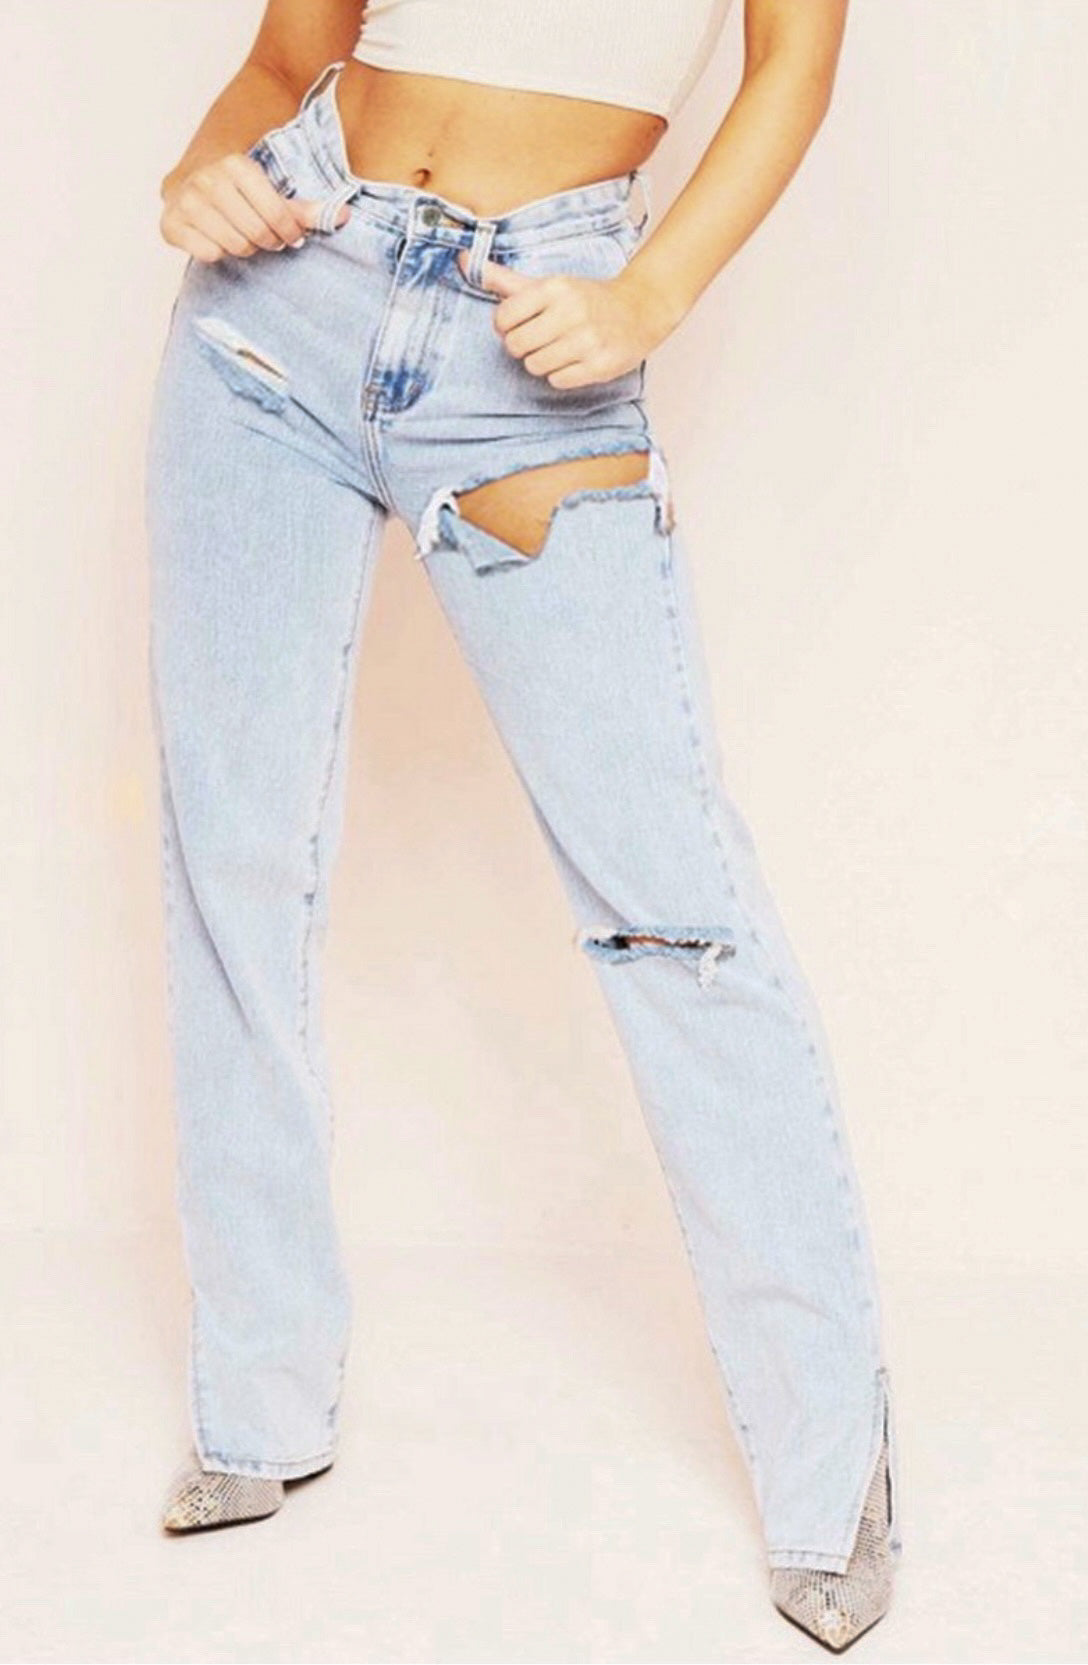 Cali Baby Jeans - Light Wash